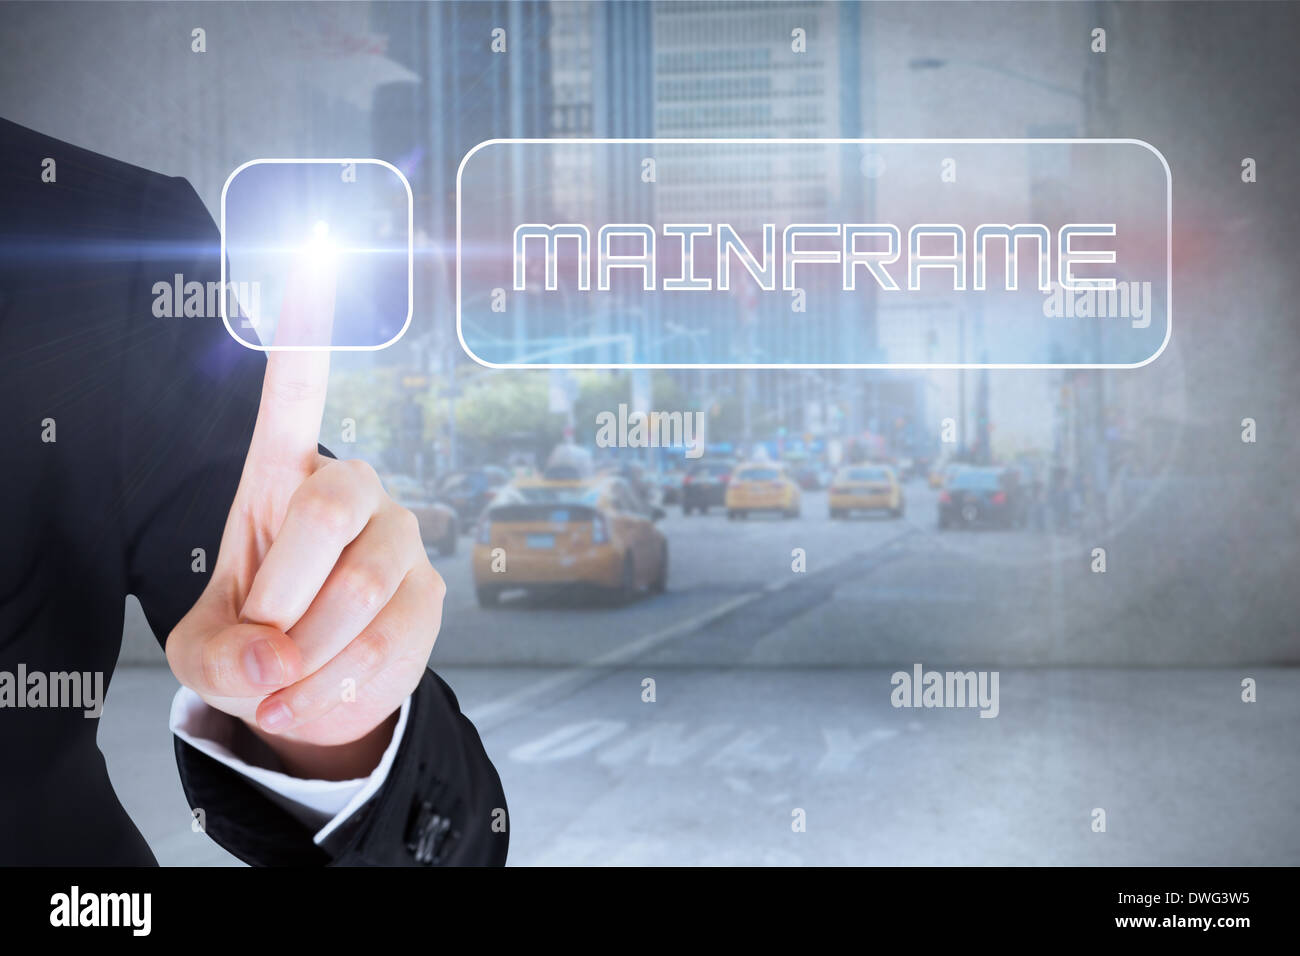 Businesswomans finger touching Mainframe button - Stock Image